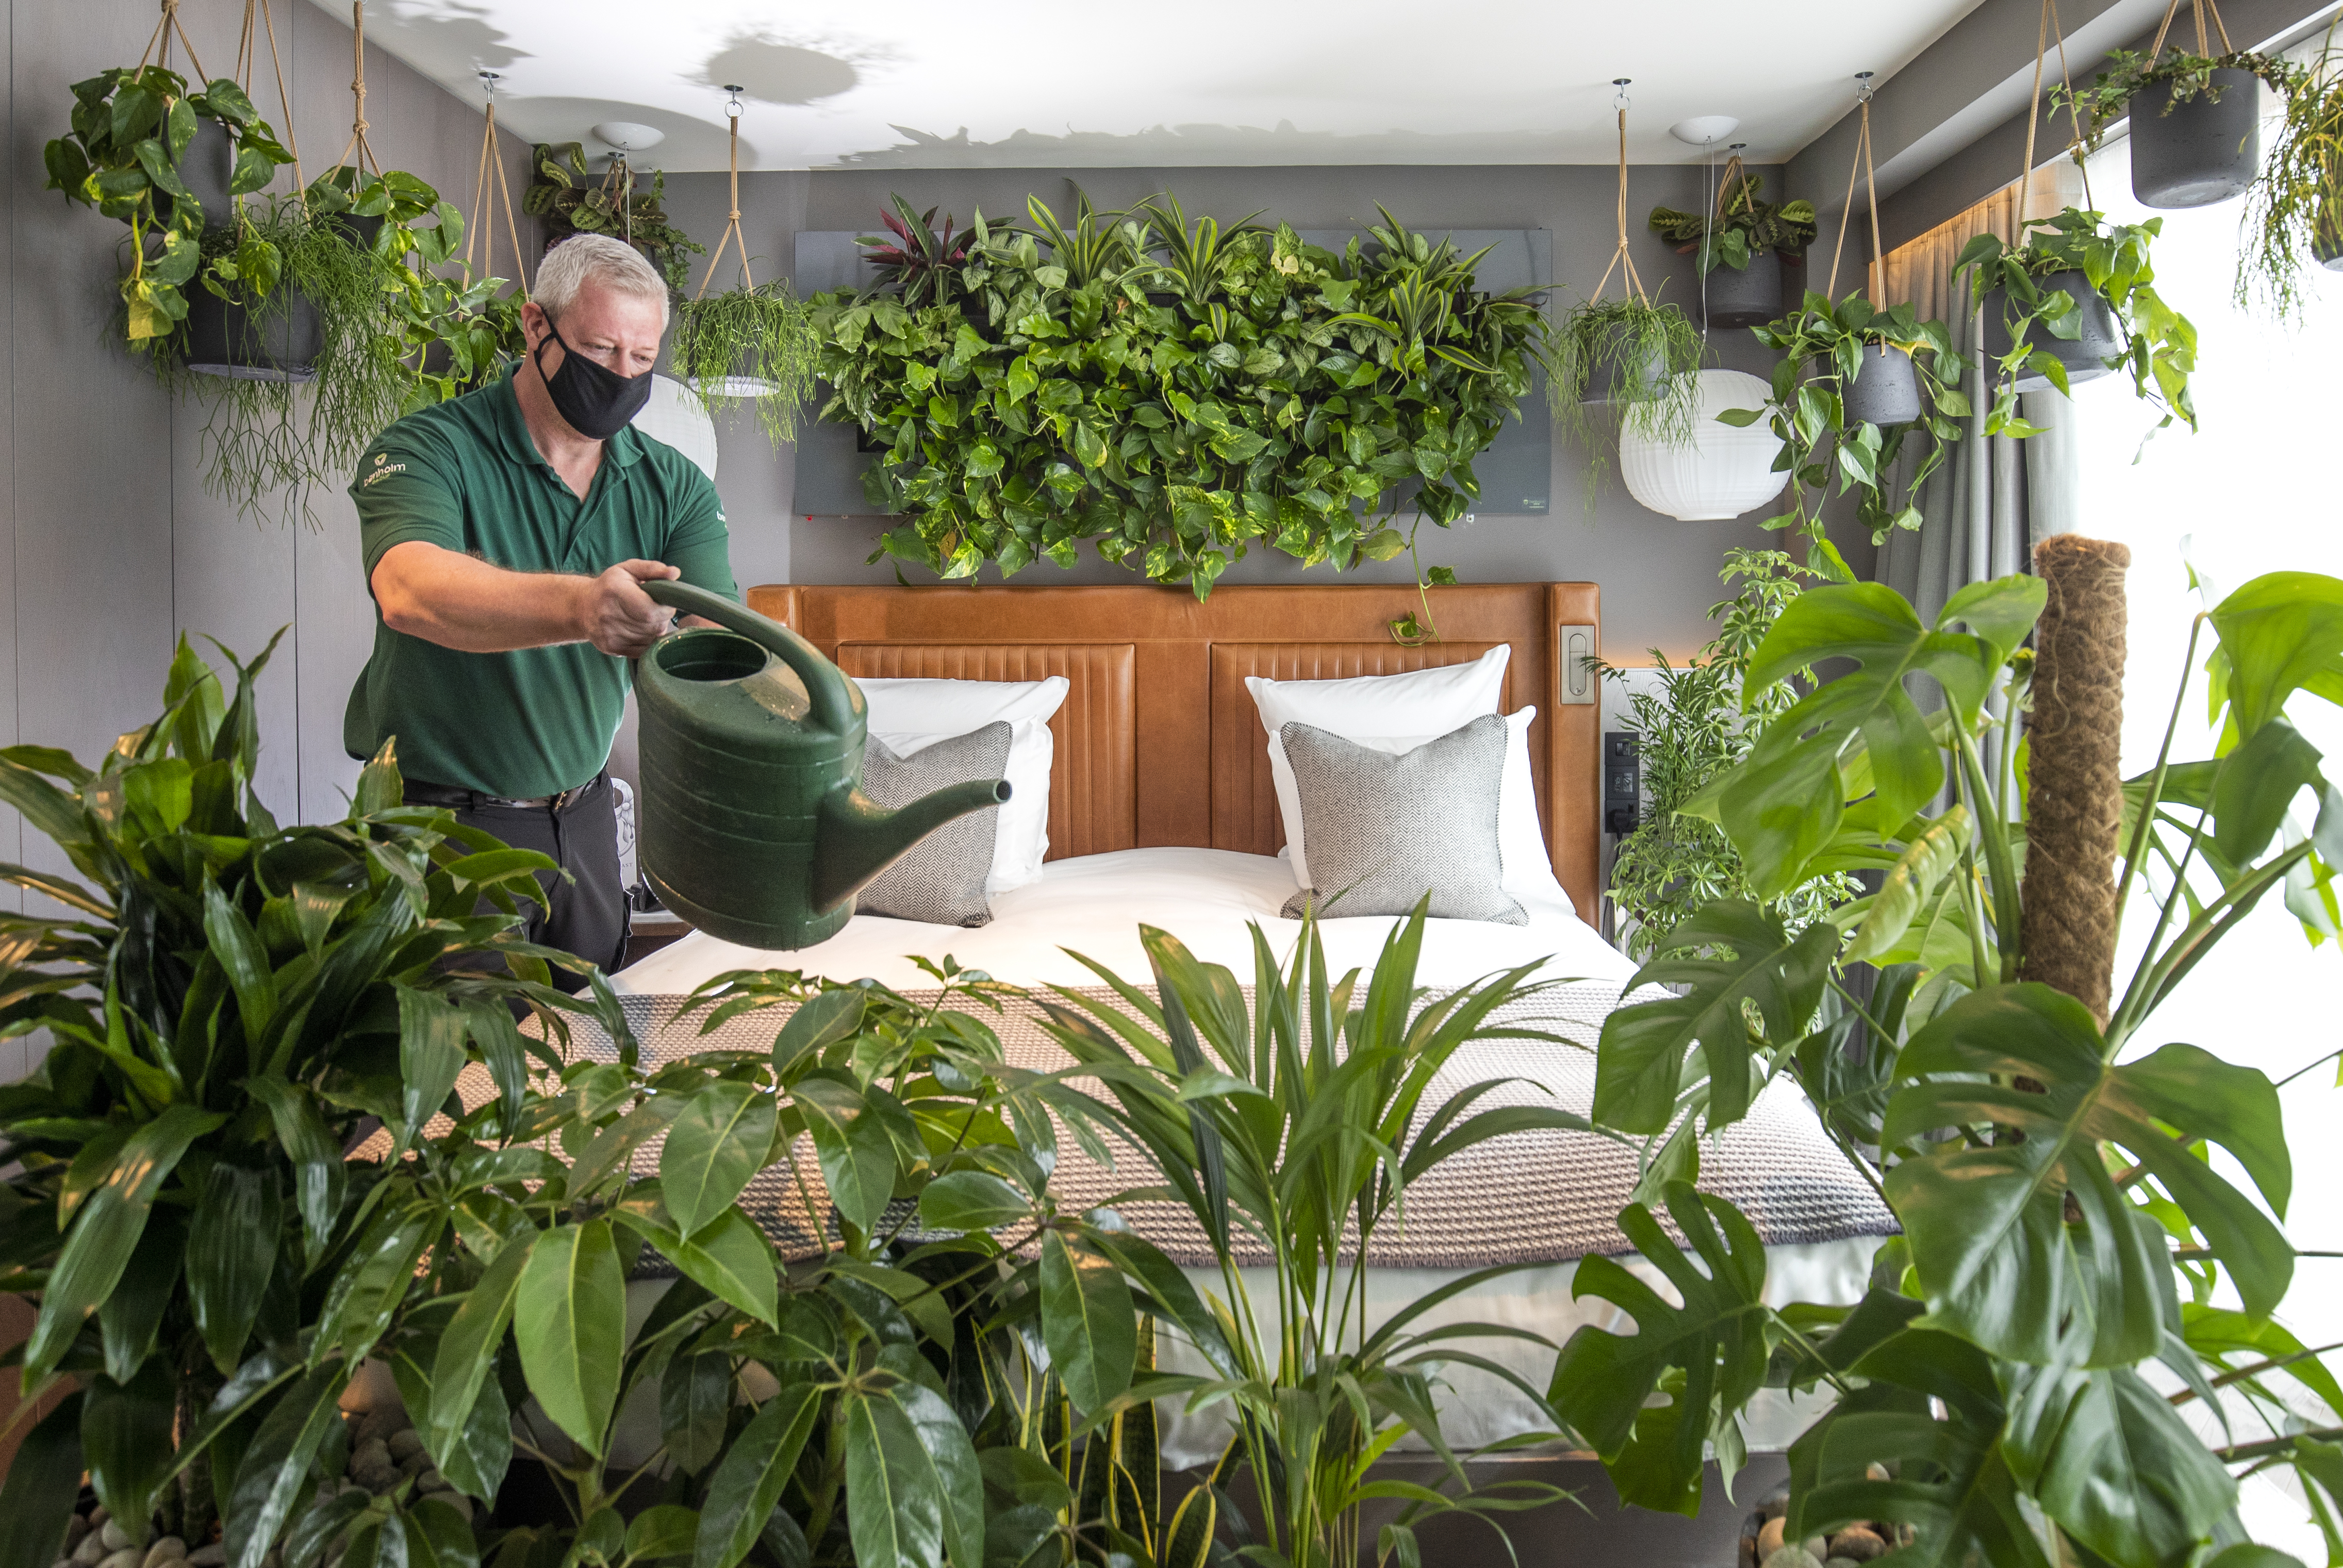 """<p>Horticulturalist Steve Soika tends to the plants in the new """"nature-themed"""" room at The Kimpton Blythswood Square hotel in Glasgow. �La Chambre Verte�, is an immersive luxury hotel suite experiment that measures the psychological and physical benefits of biophilic design and has been launched during Mental Health Awareness Week 2021. Picture date: Wednesday May 12, 2021.</p>"""